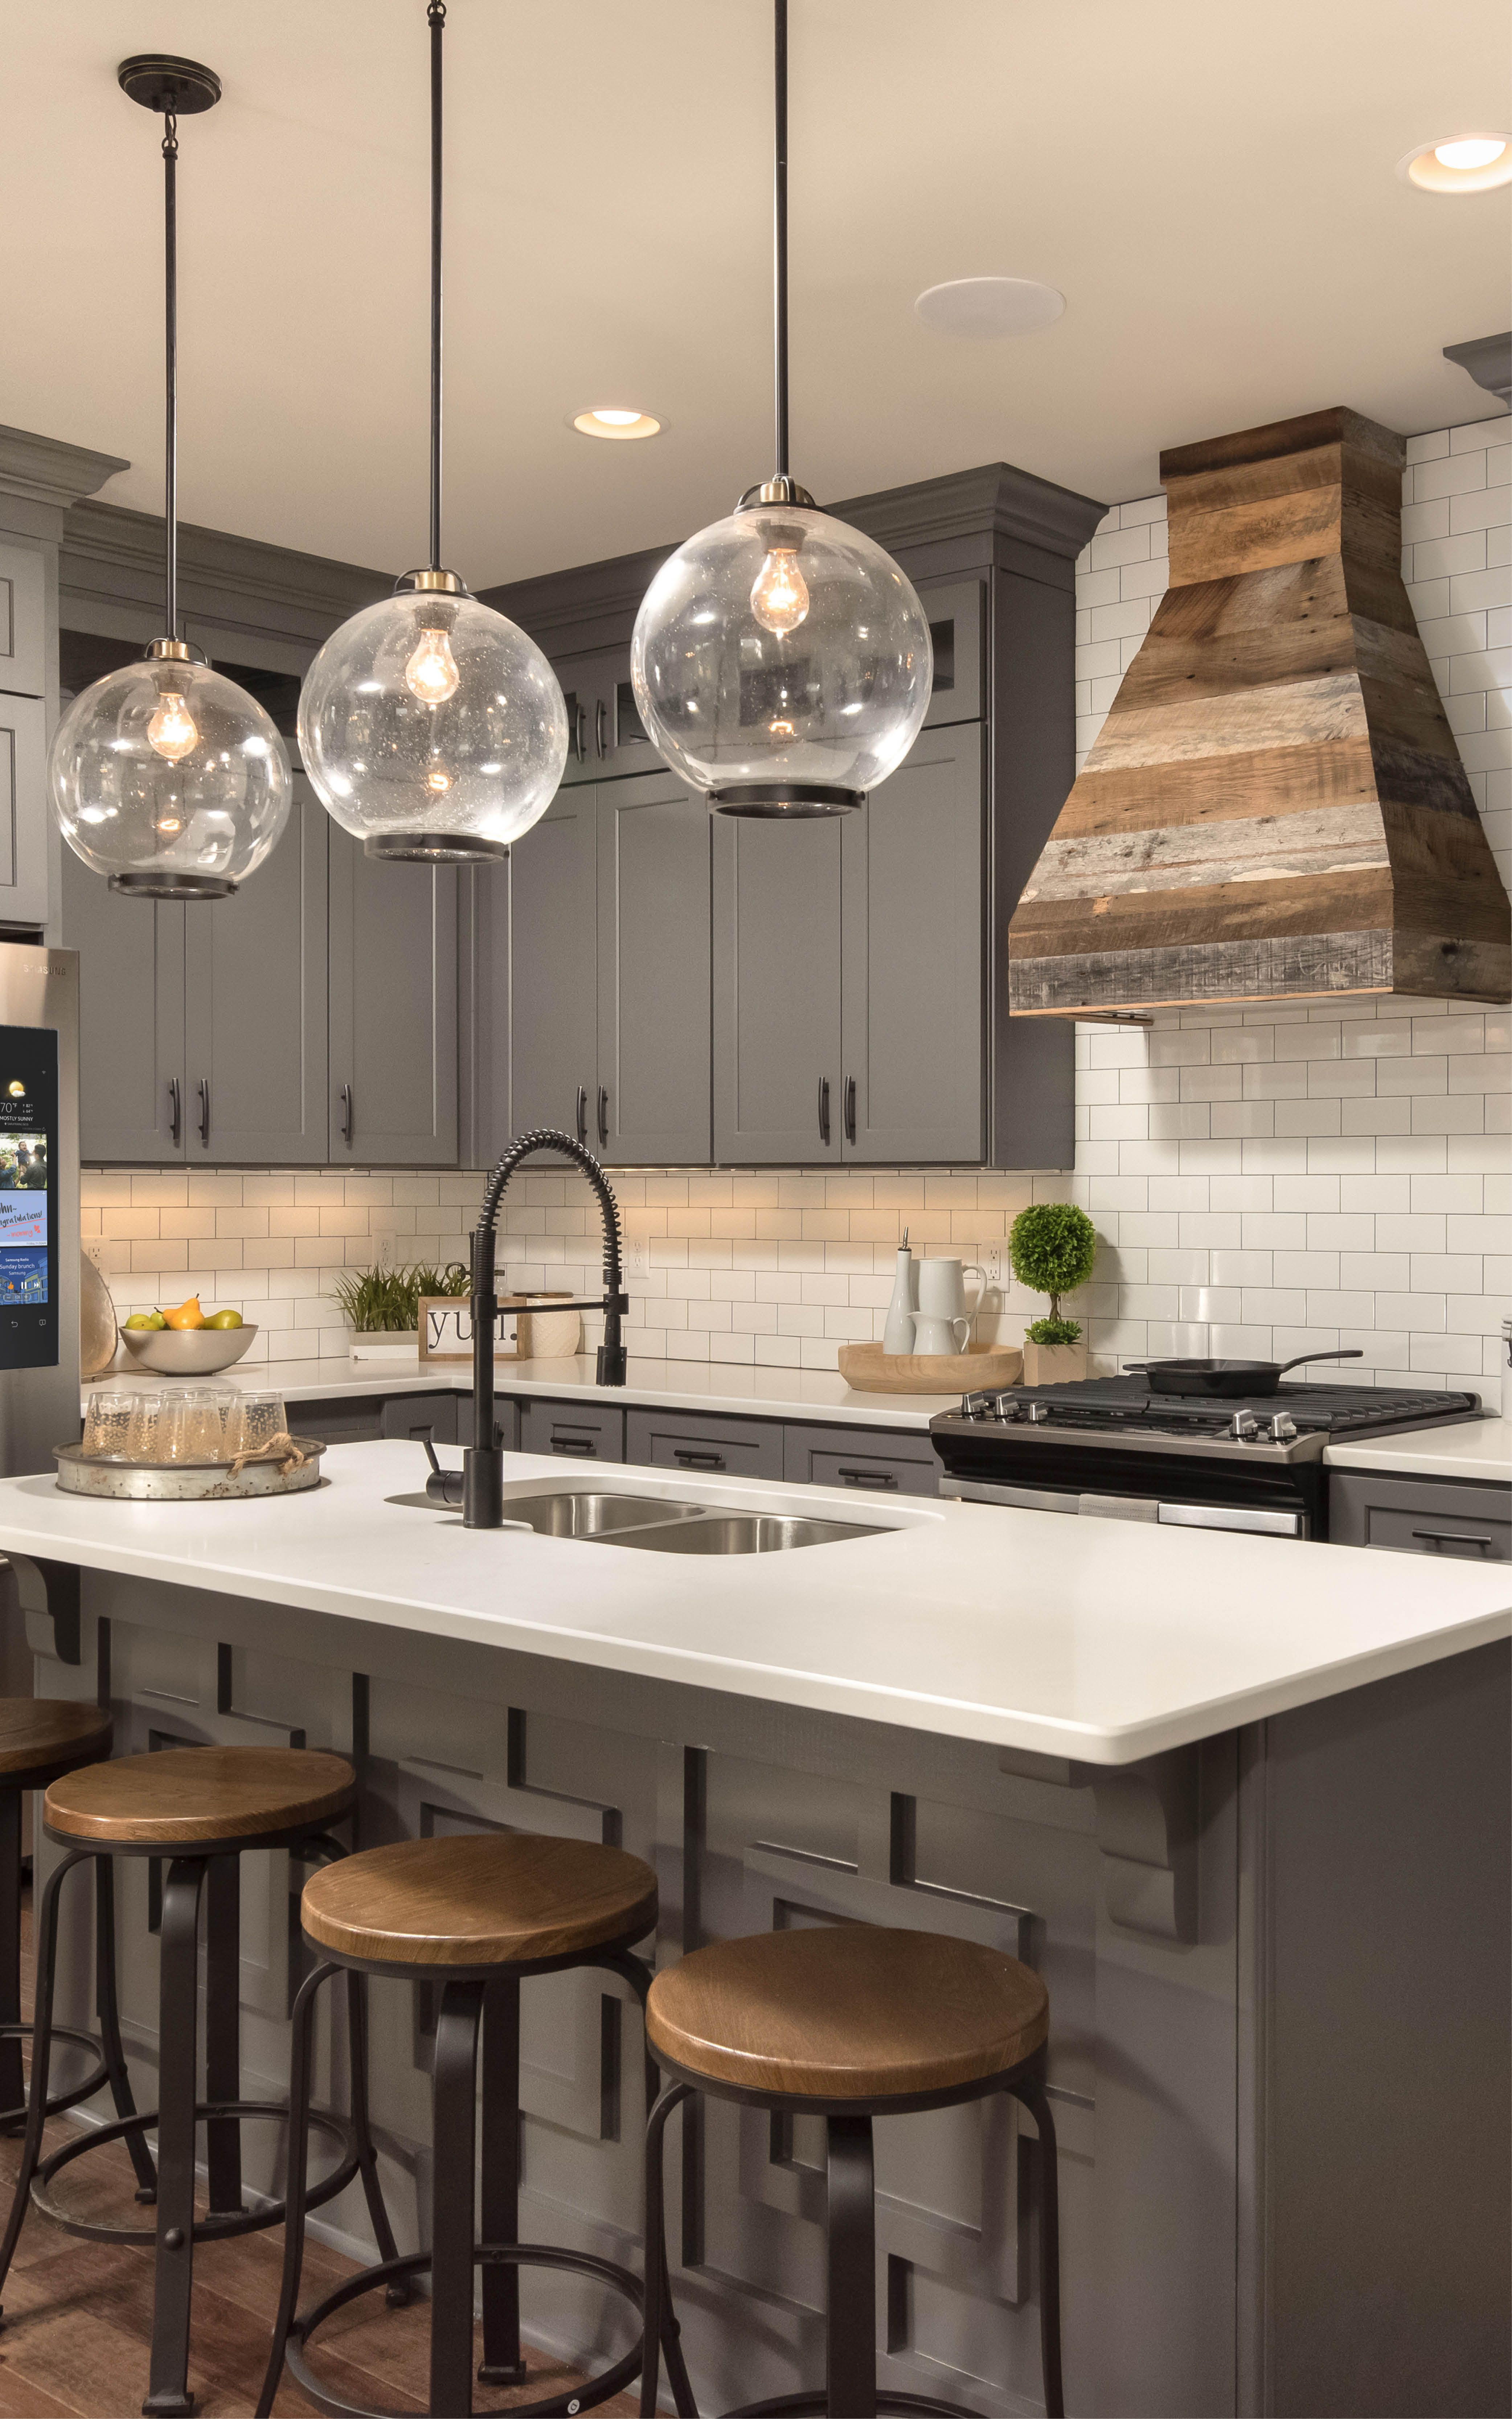 Vintage Metal Pendants Contributes To Simple Sophisticated Kitchen Interior Design Project Kitchen Interior Interior Design Kitchen Kitchen Design Open